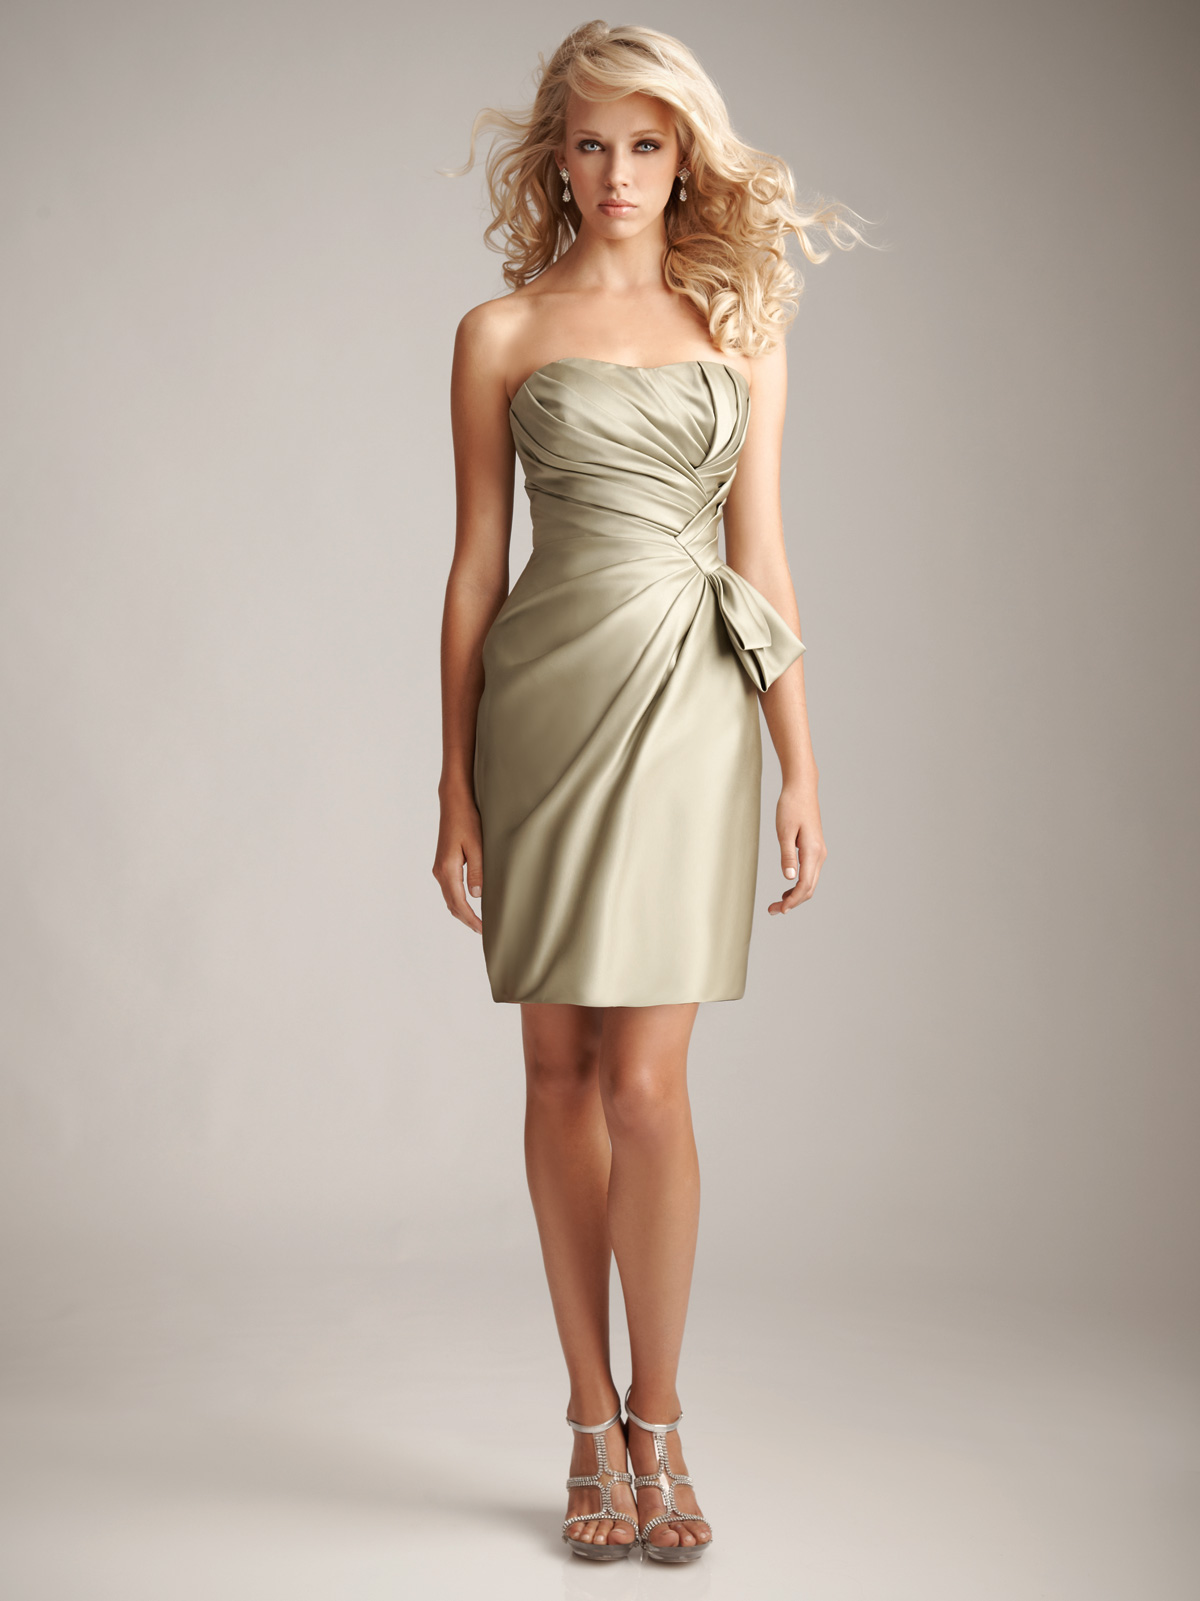 strapless short bridesmaid dress